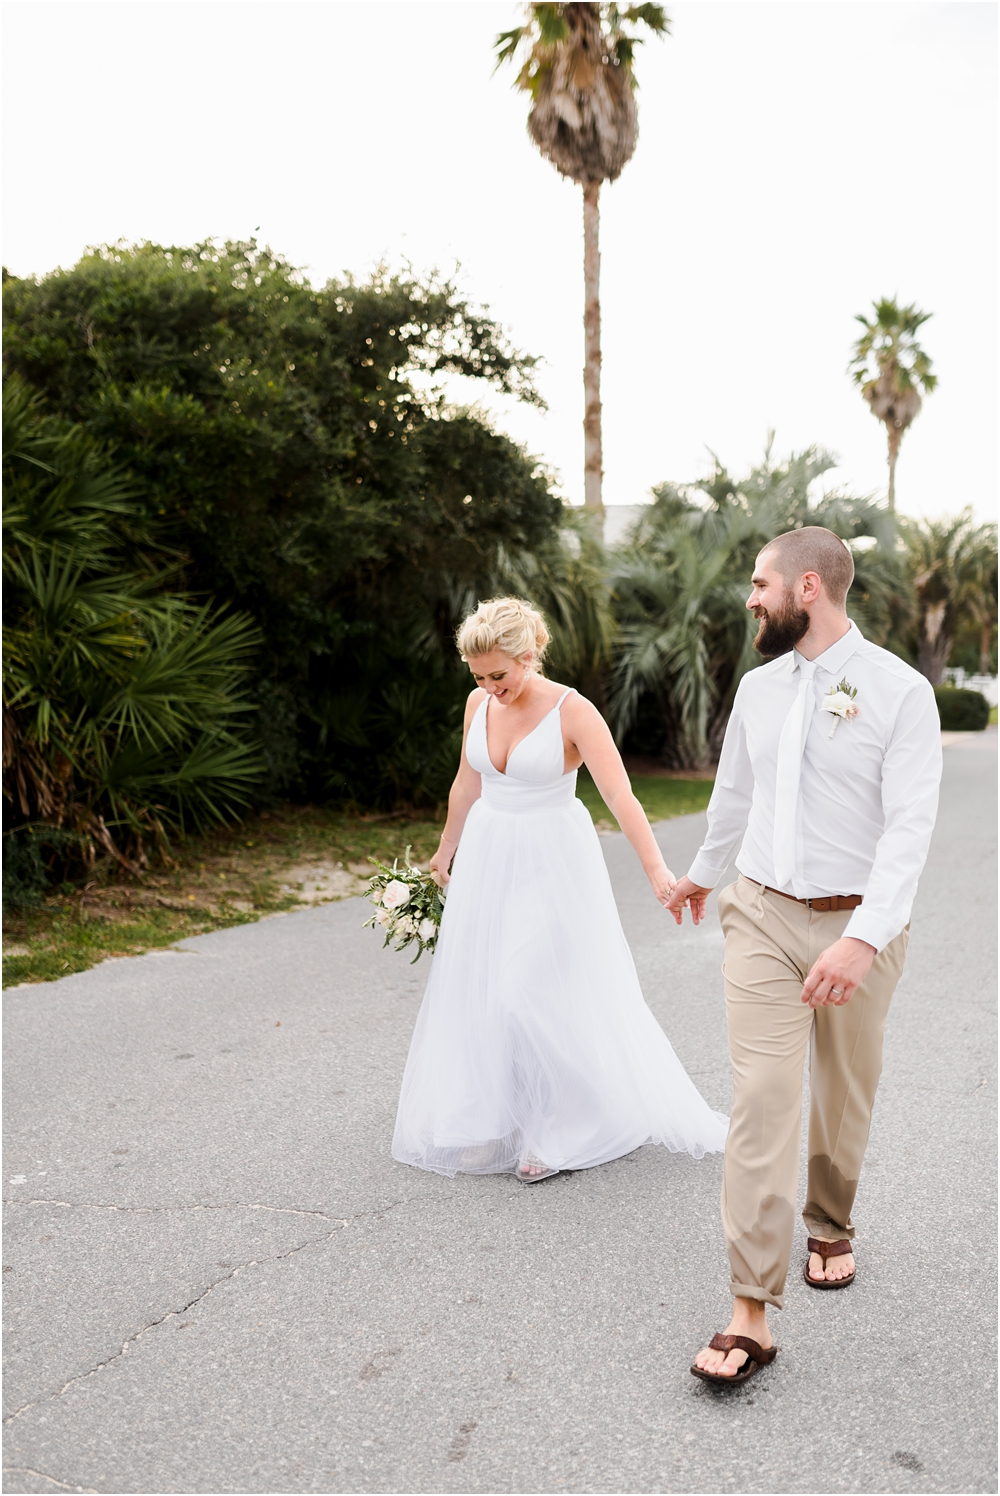 wernert-florida-beach-elopement-wedding-photographer-kiersten-grant-88.jpg